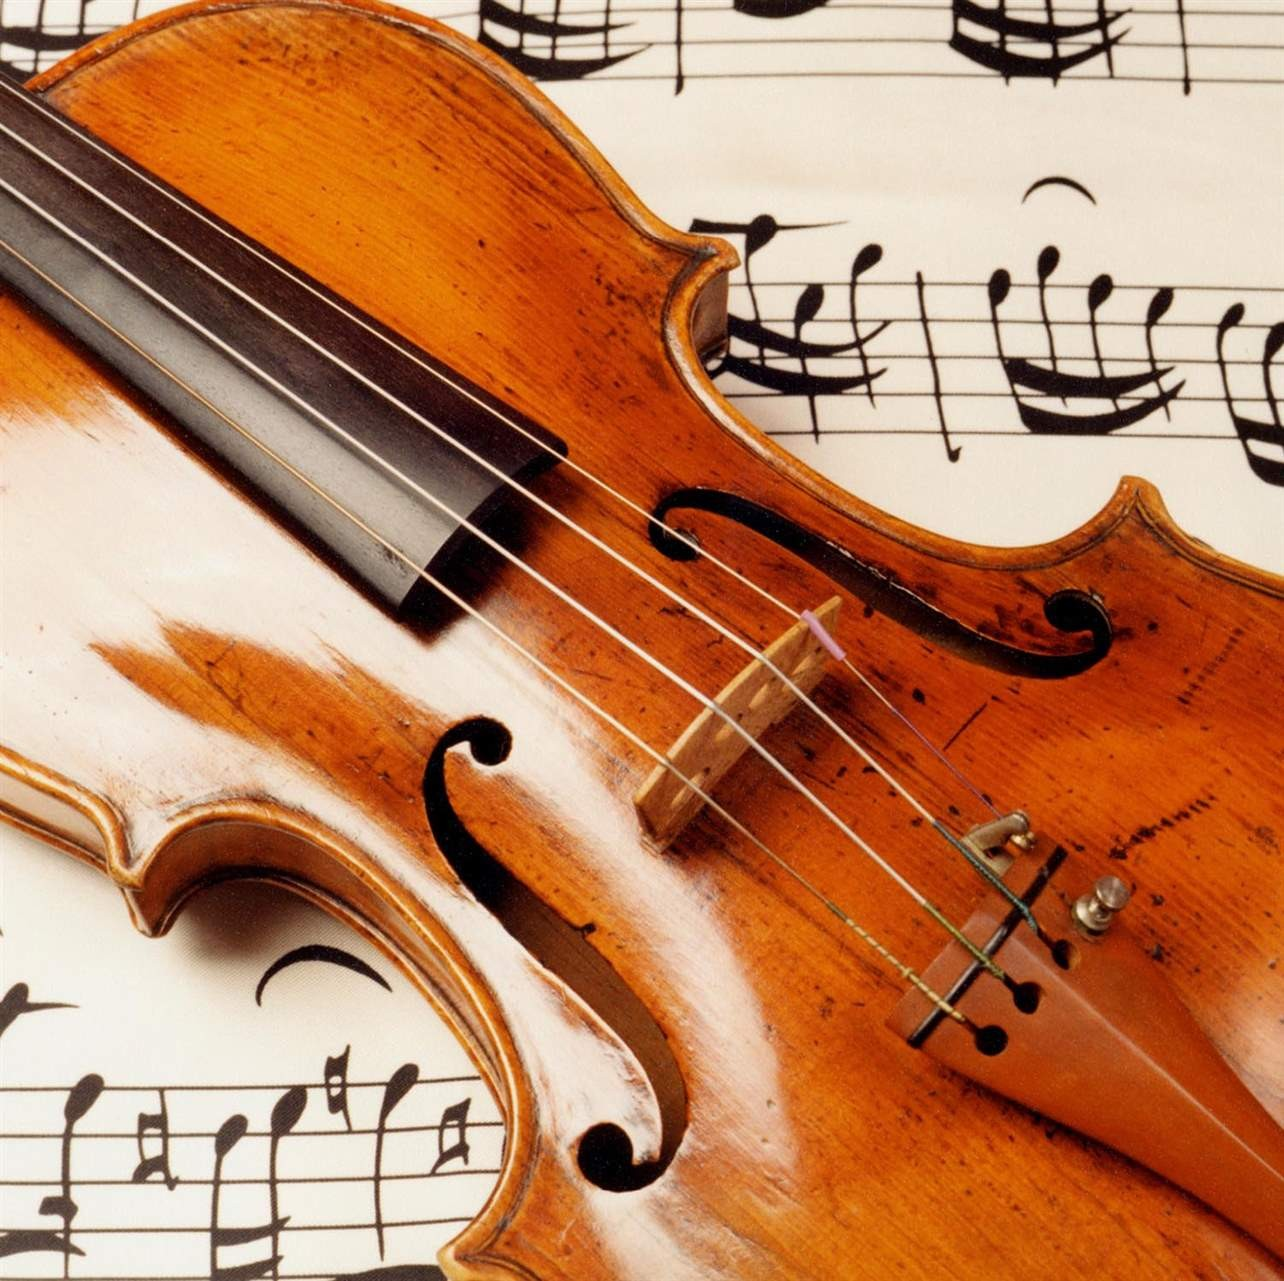 Violin Market to Witness Remarkable Growth by Manufacturers: Suzuki, Kapok, Ernstkaps, Stentor